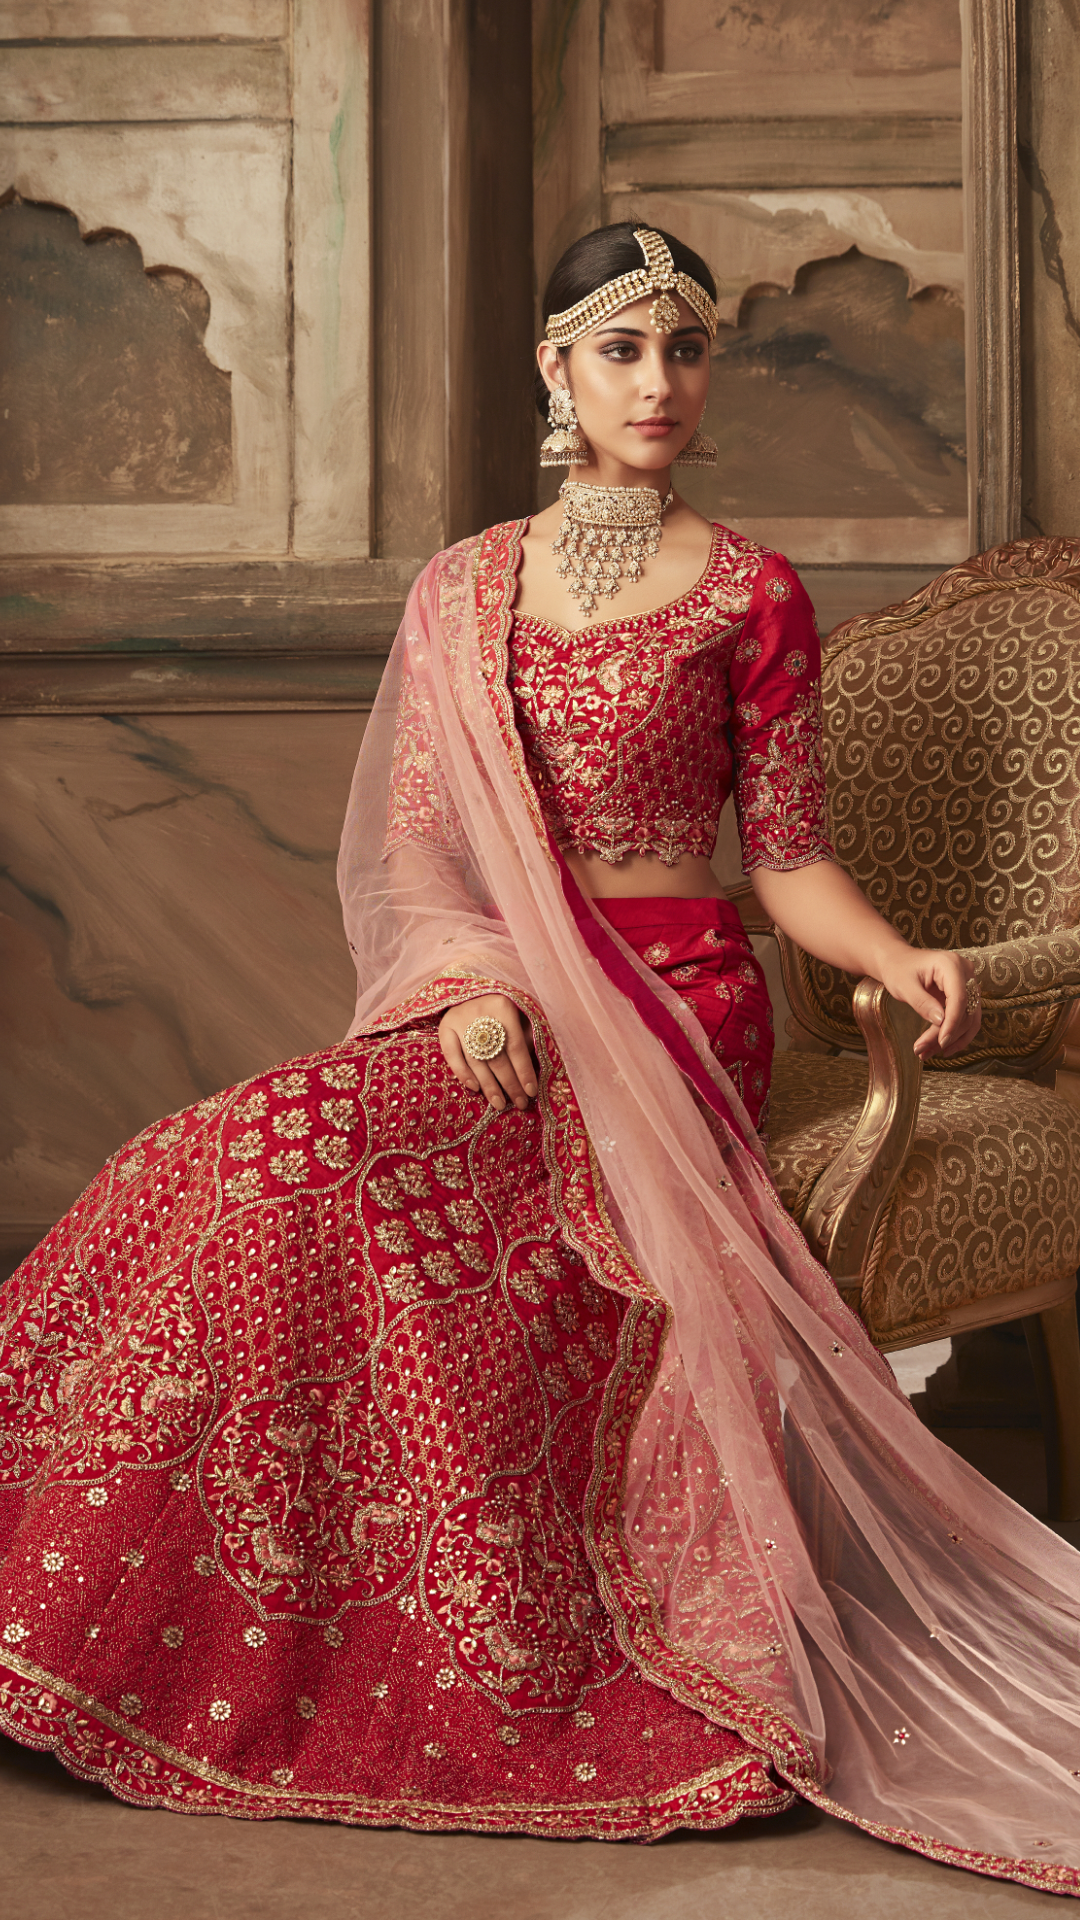 042d54892a Be your own style diva with this red banarasi silk designer lehenga choli.